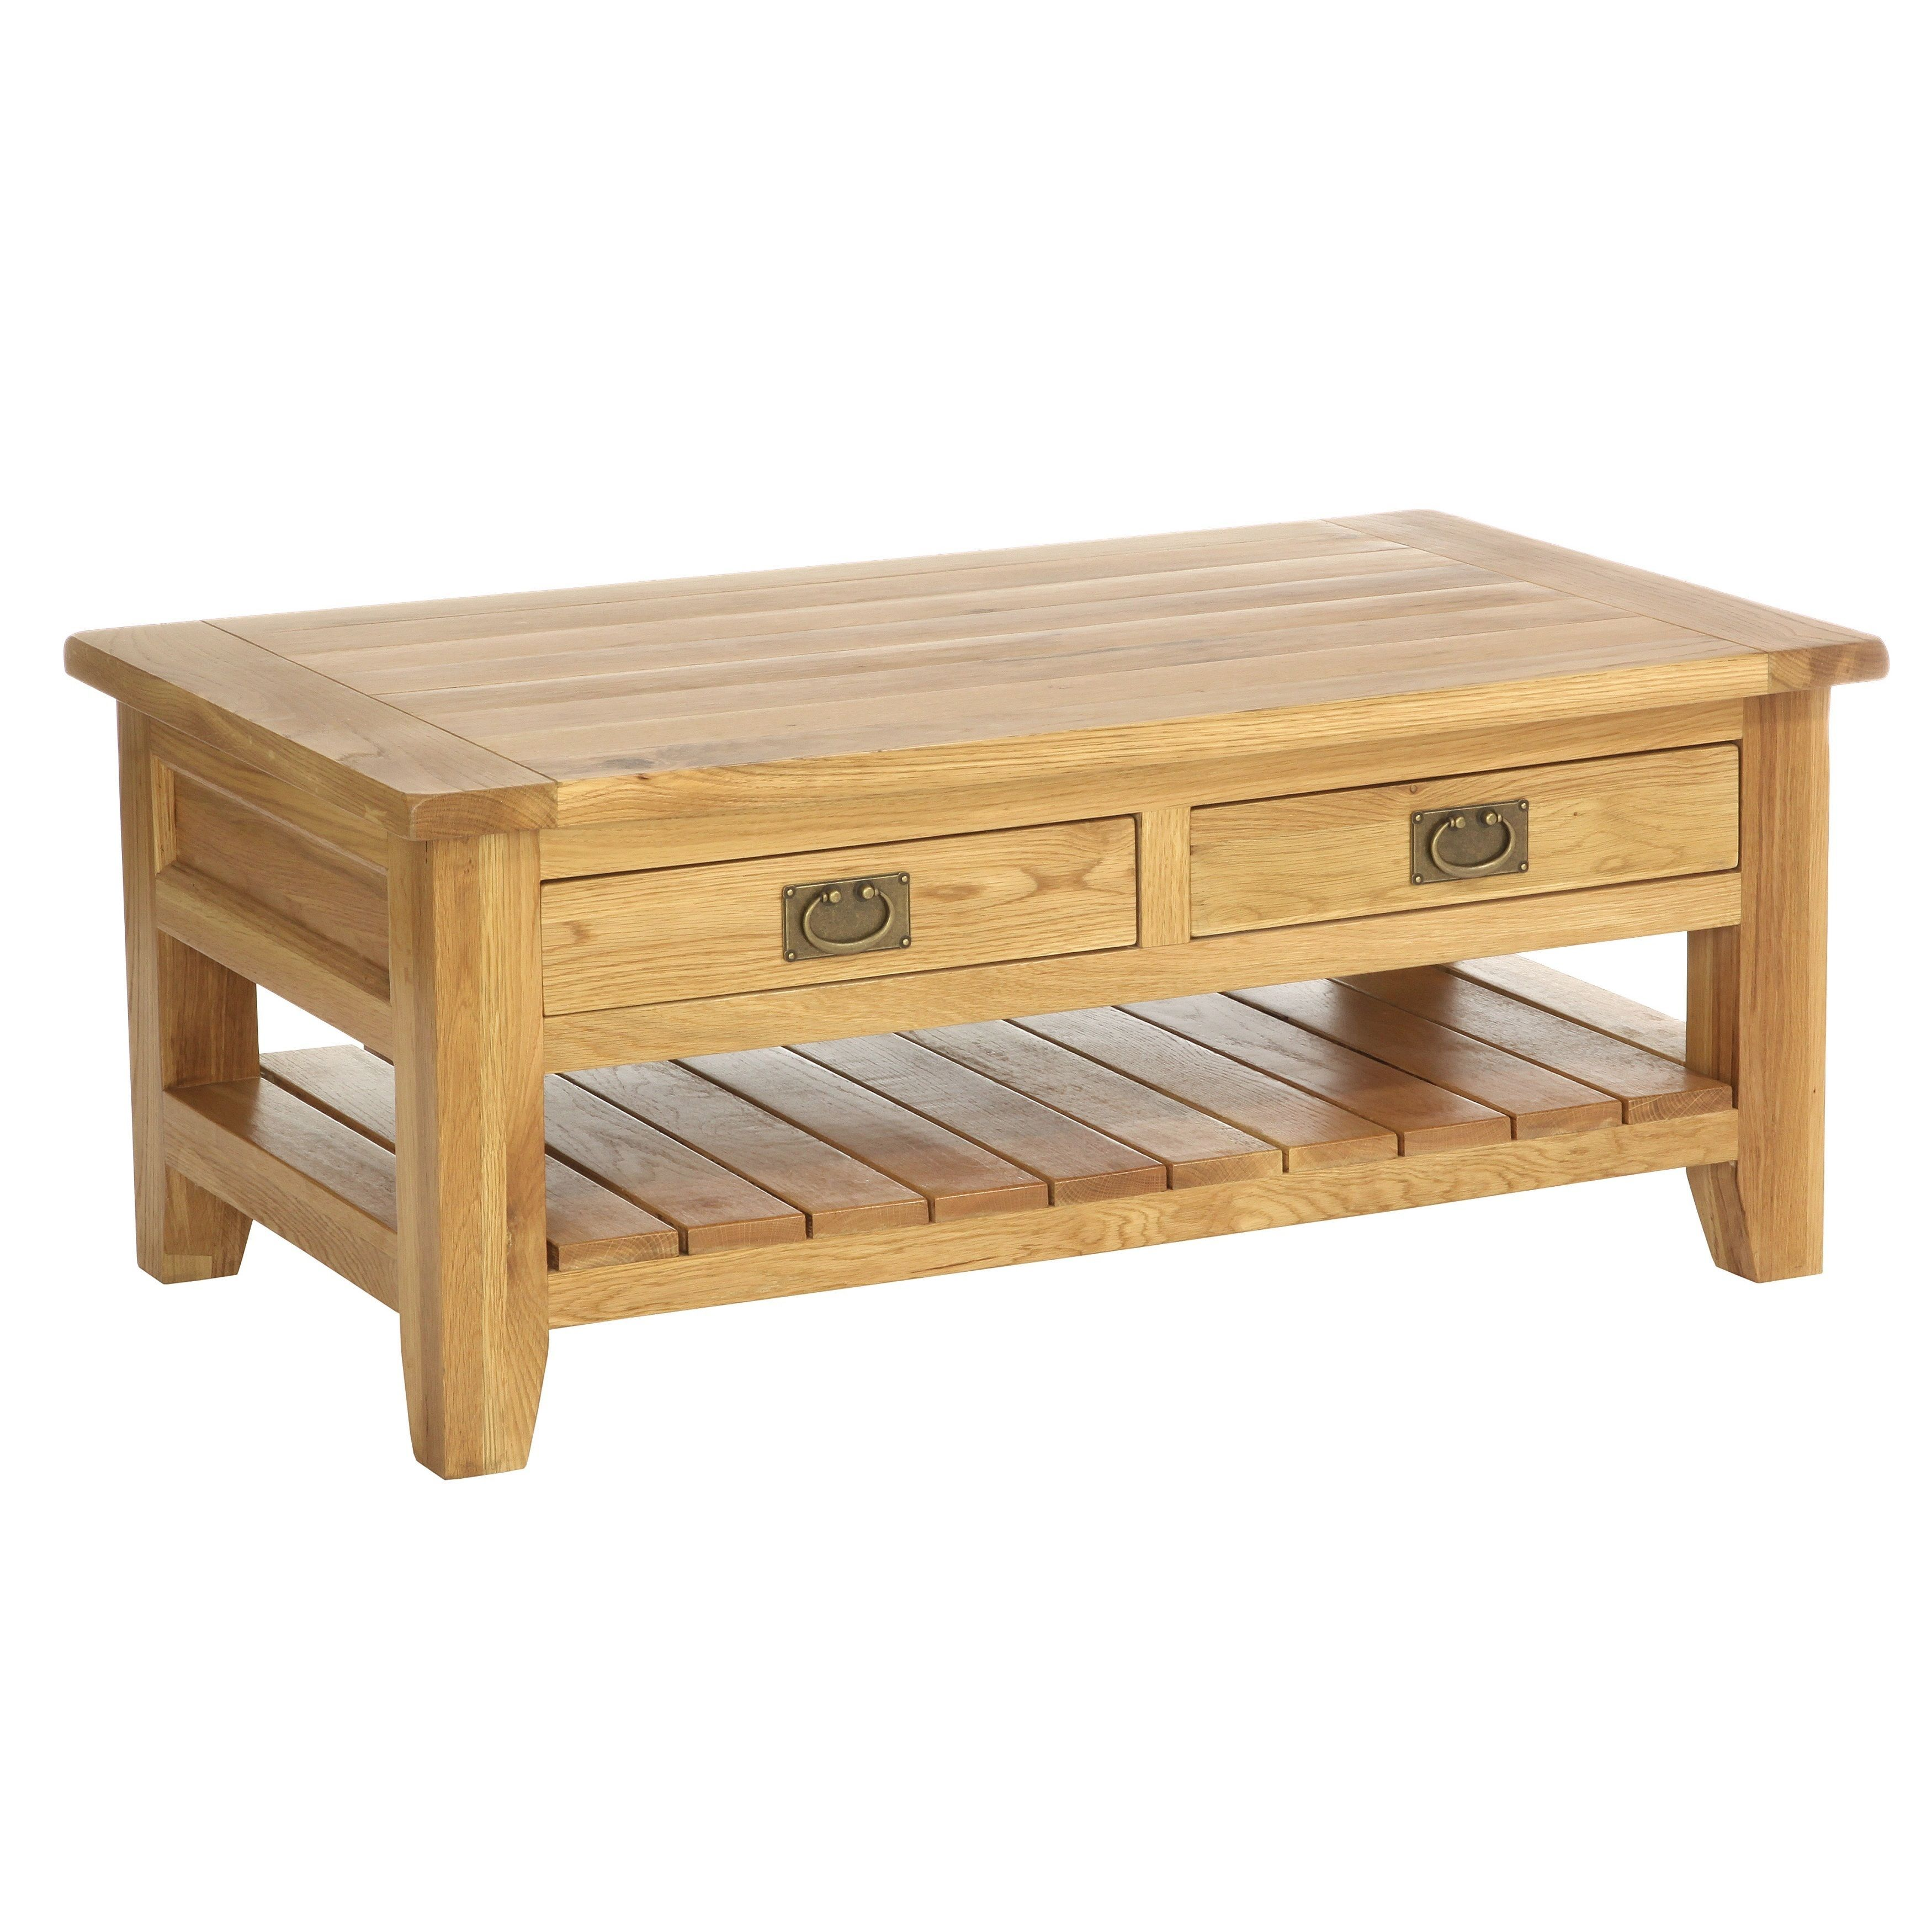 The Vancouver coffee cocktail table with two drawers has been